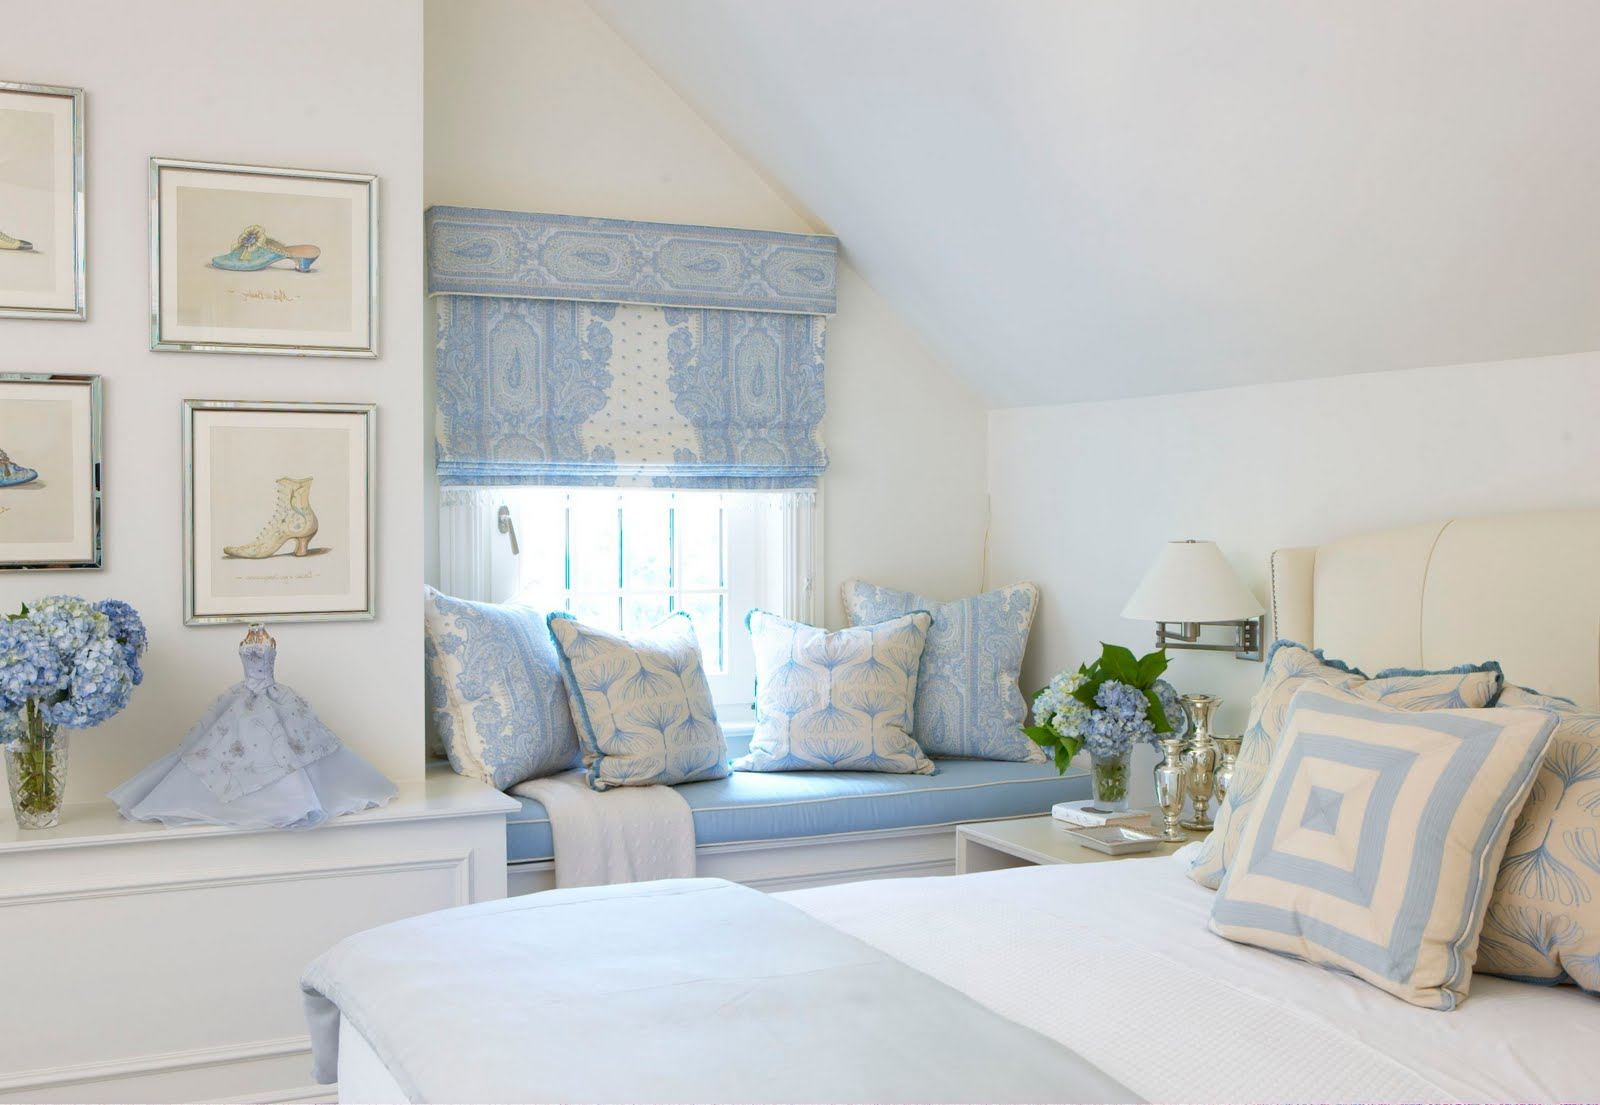 Light Teal Bedroom Accessories Home Design Ideas Blue Master Lighting And Gray Bedding Decor Room Decorating Black Apppie Org